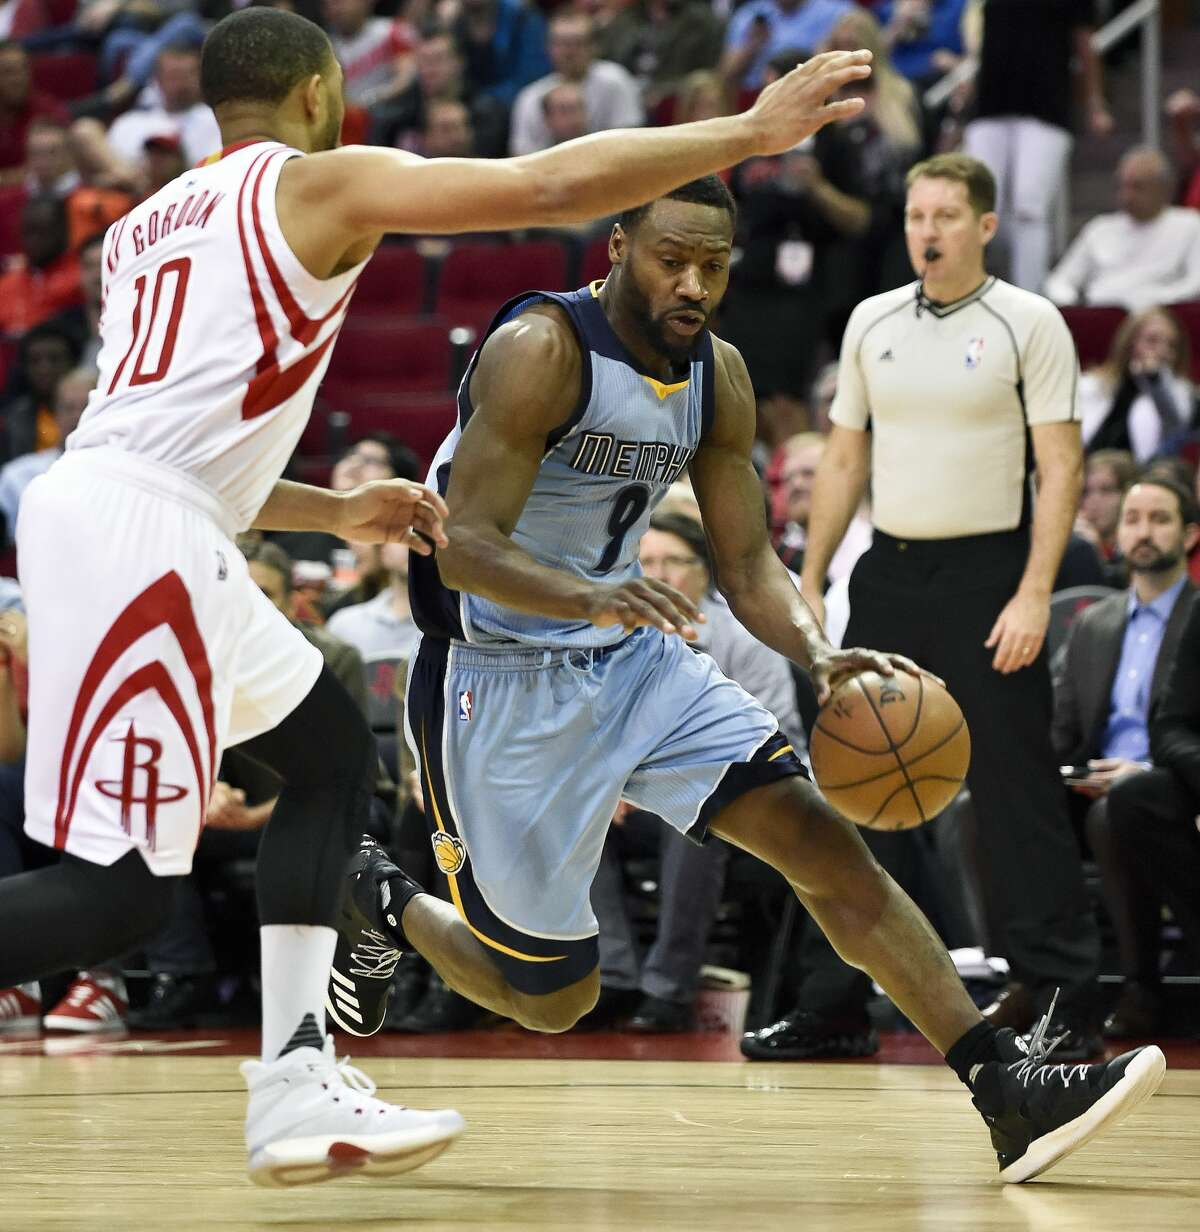 Memphis Grizzlies guard Tony Allen (9) drives around Houston Rockets guard Eric Gordon in the first half of an NBA basketball game, Saturday, March 4, 2017, in Houston. (AP Photo/Eric Christian Smith)